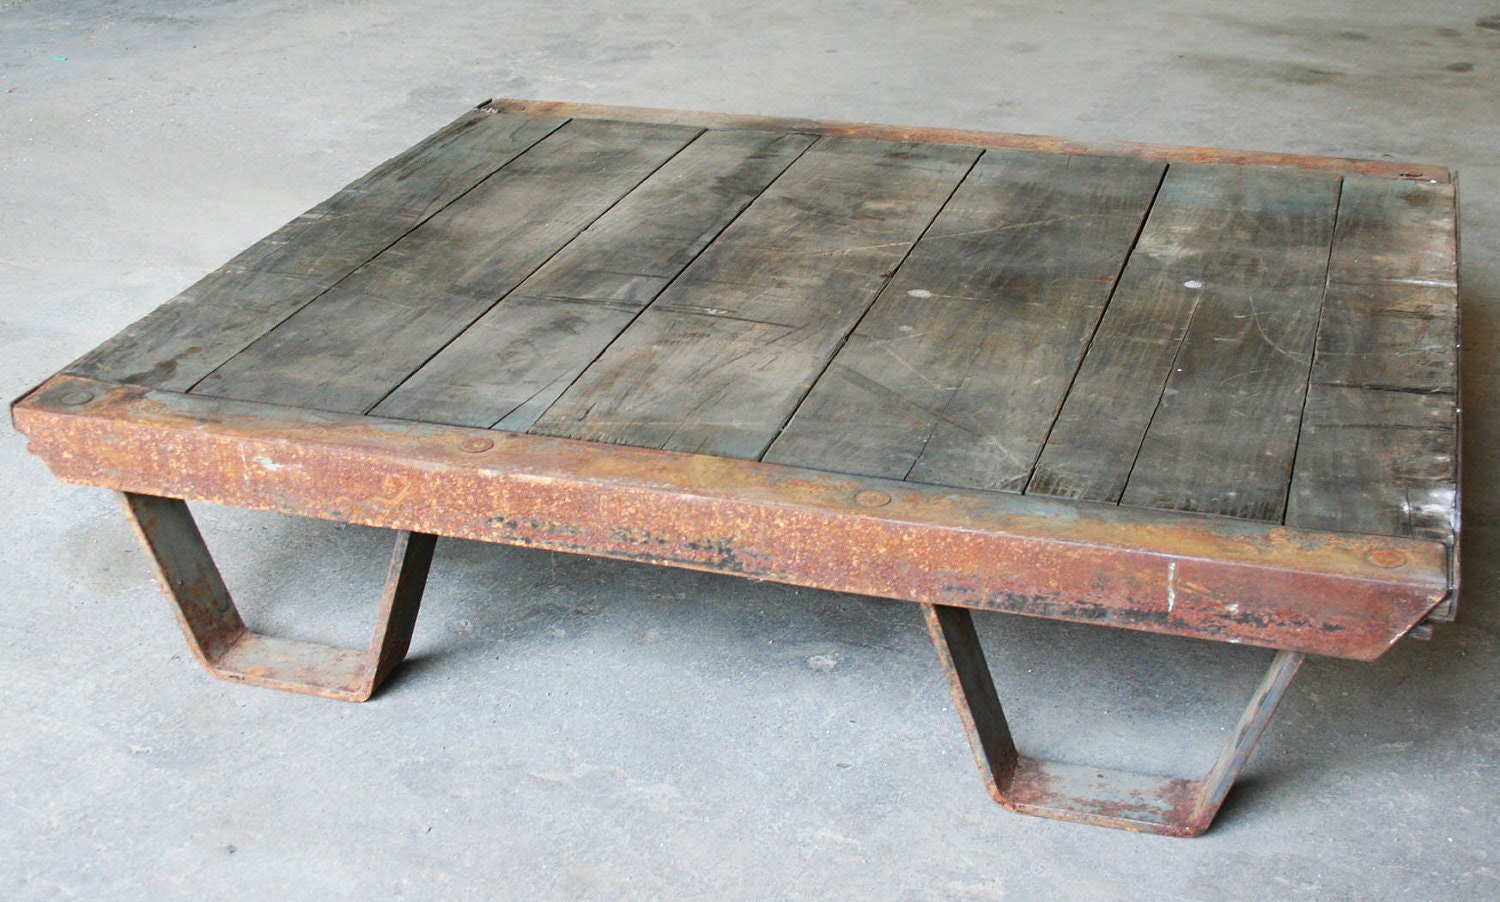 Vintage industrial coffee table pallet industrial furniture haute juice Old wooden furniture